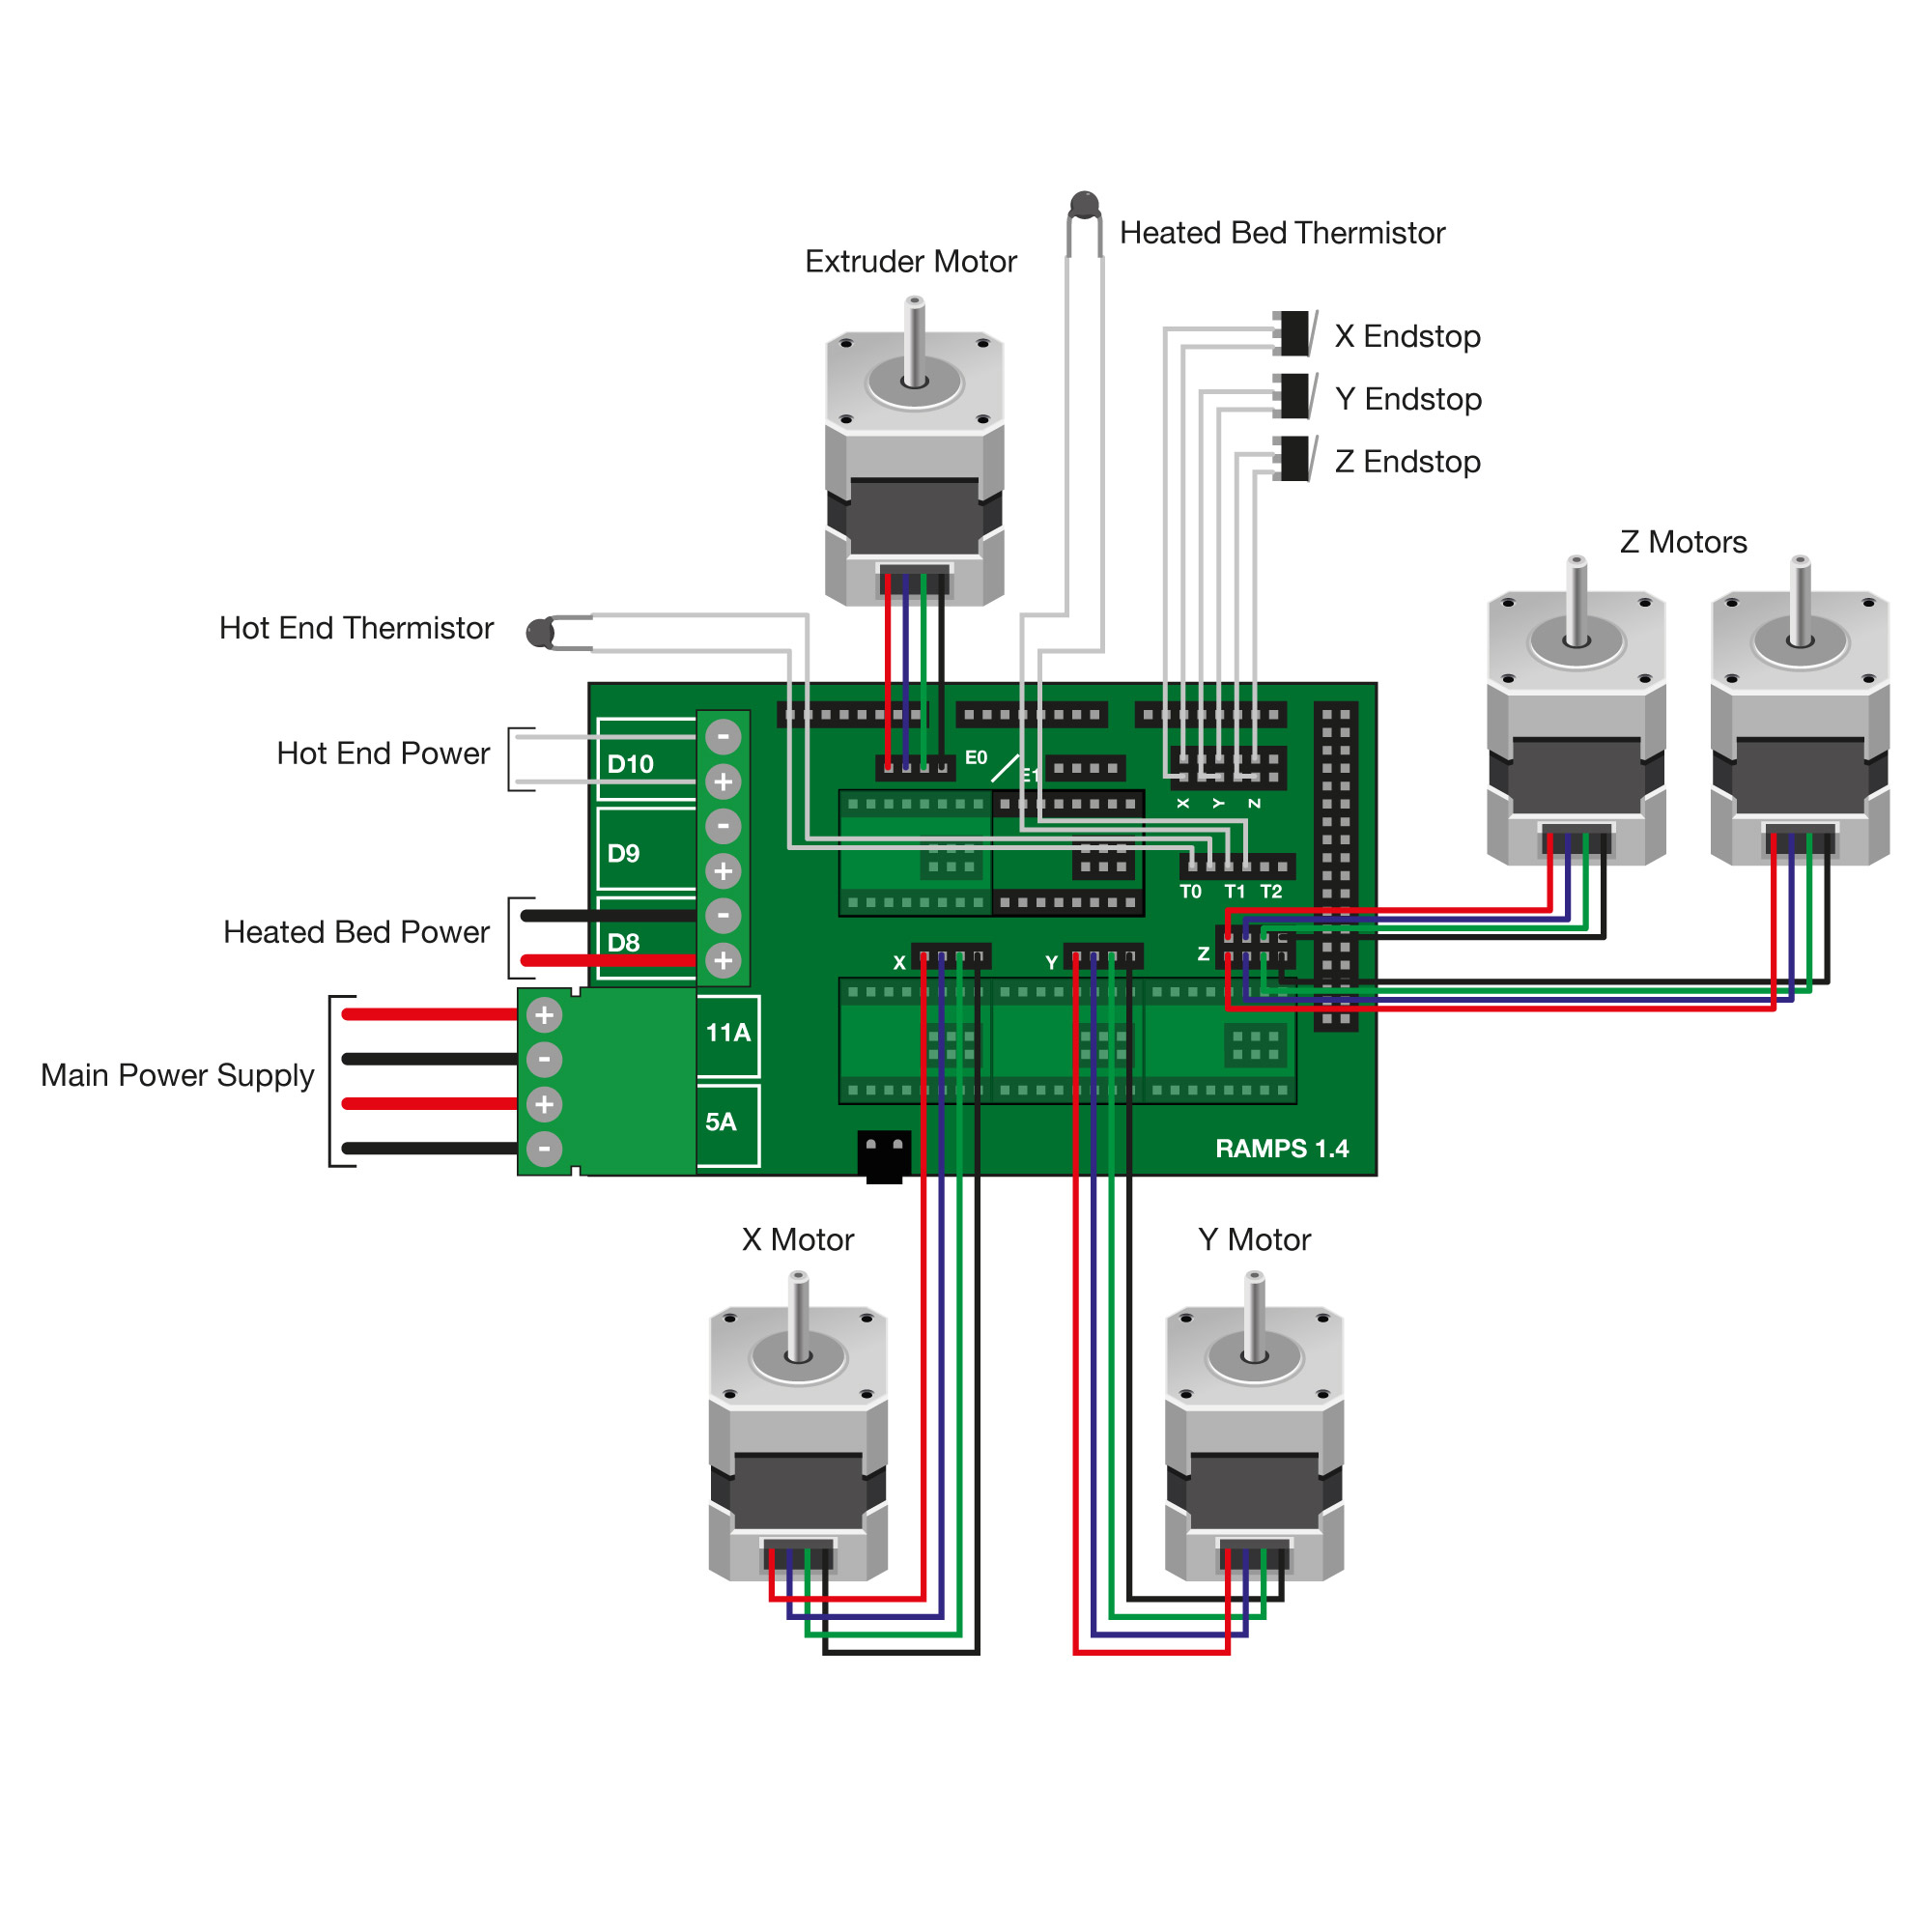 Wiring Ramps Electronics For Reprap Prusa I3 3d Printer Asensar 4 Wire Connector Diagram